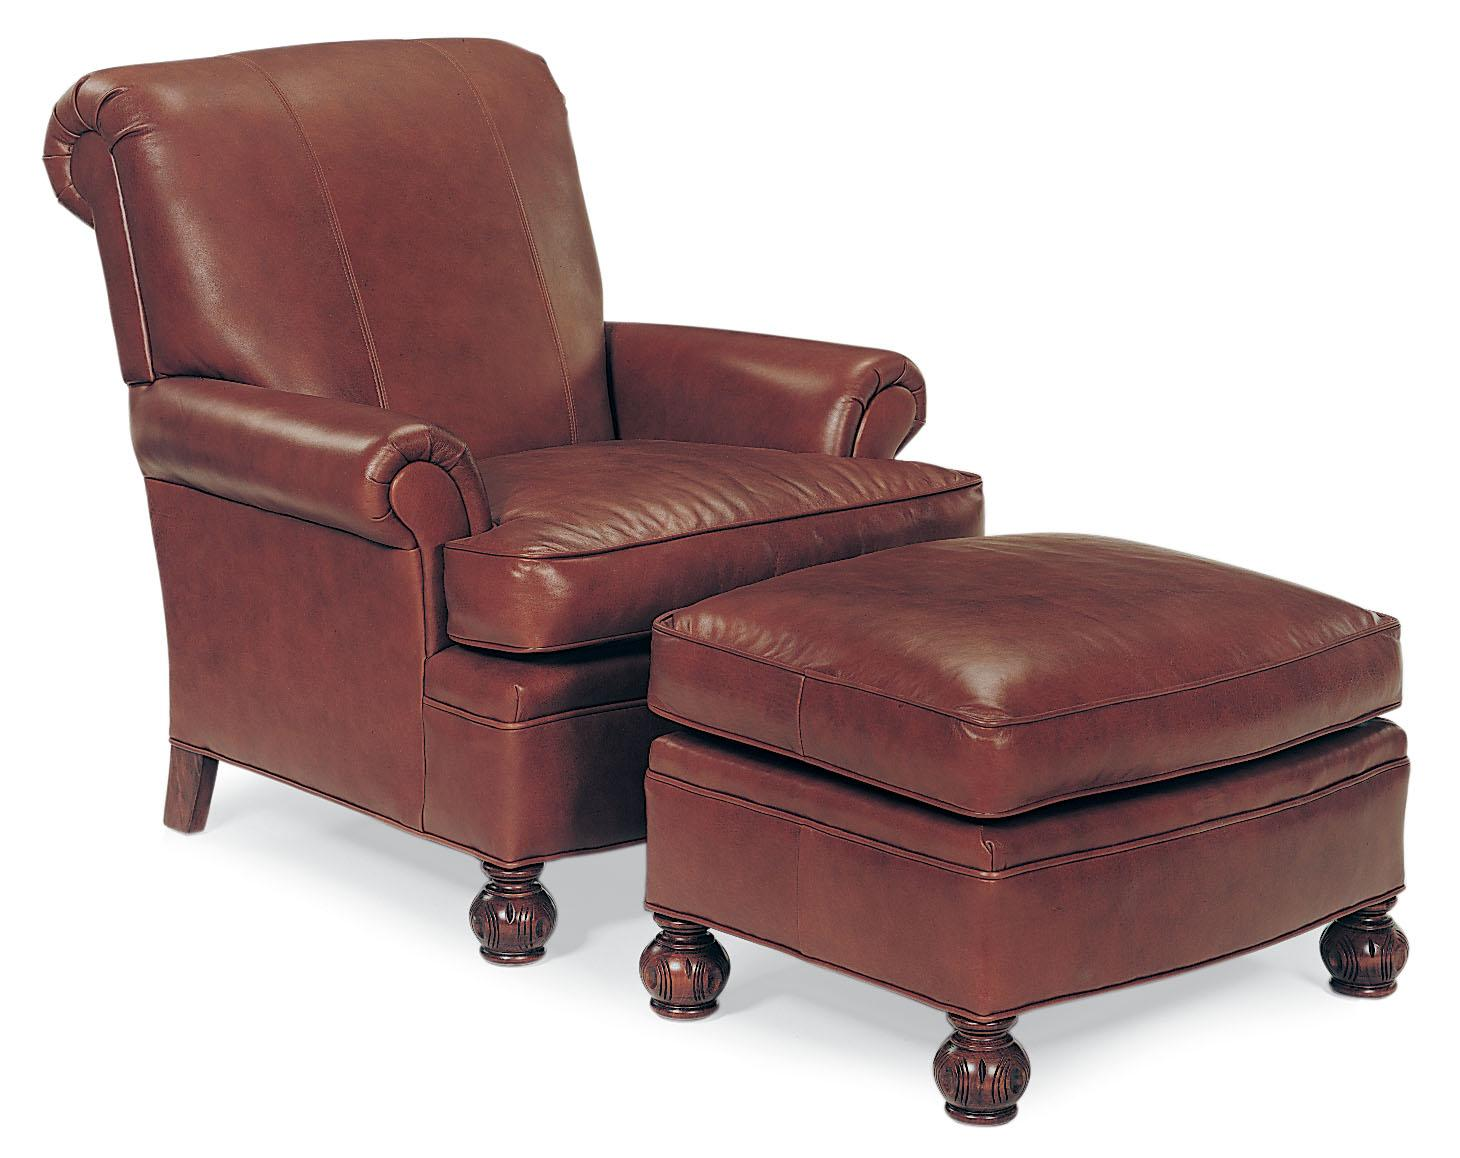 Fairfield Chairs Chair and Ottoman - Item Number: 1489-01+20